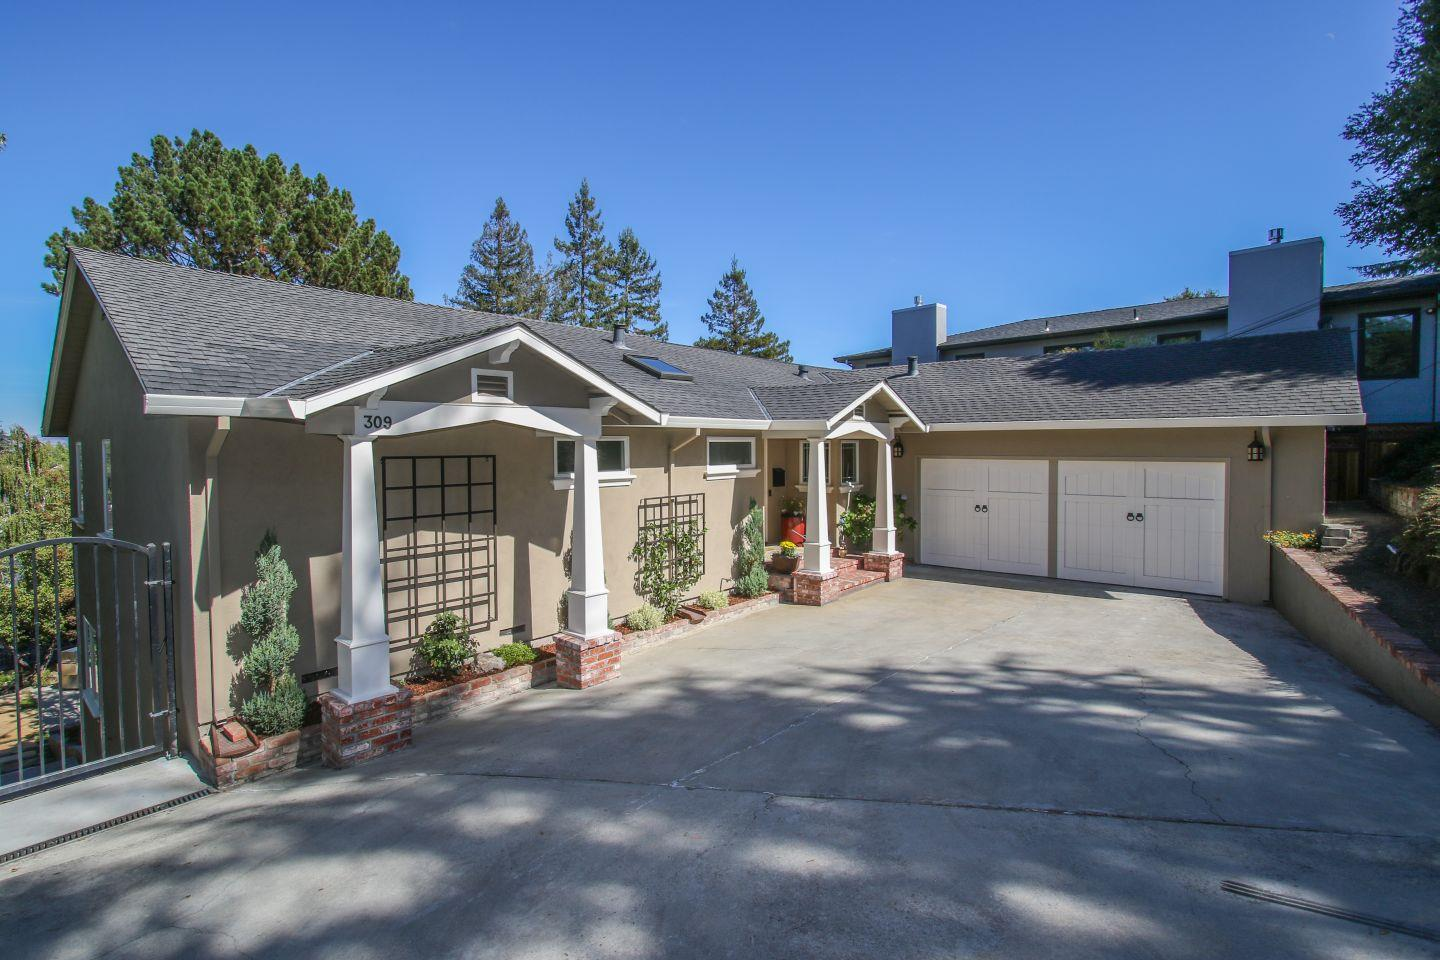 Single Family Home for Sale at 309 Oakview Drive 309 Oakview Drive San Carlos, California 94070 United States